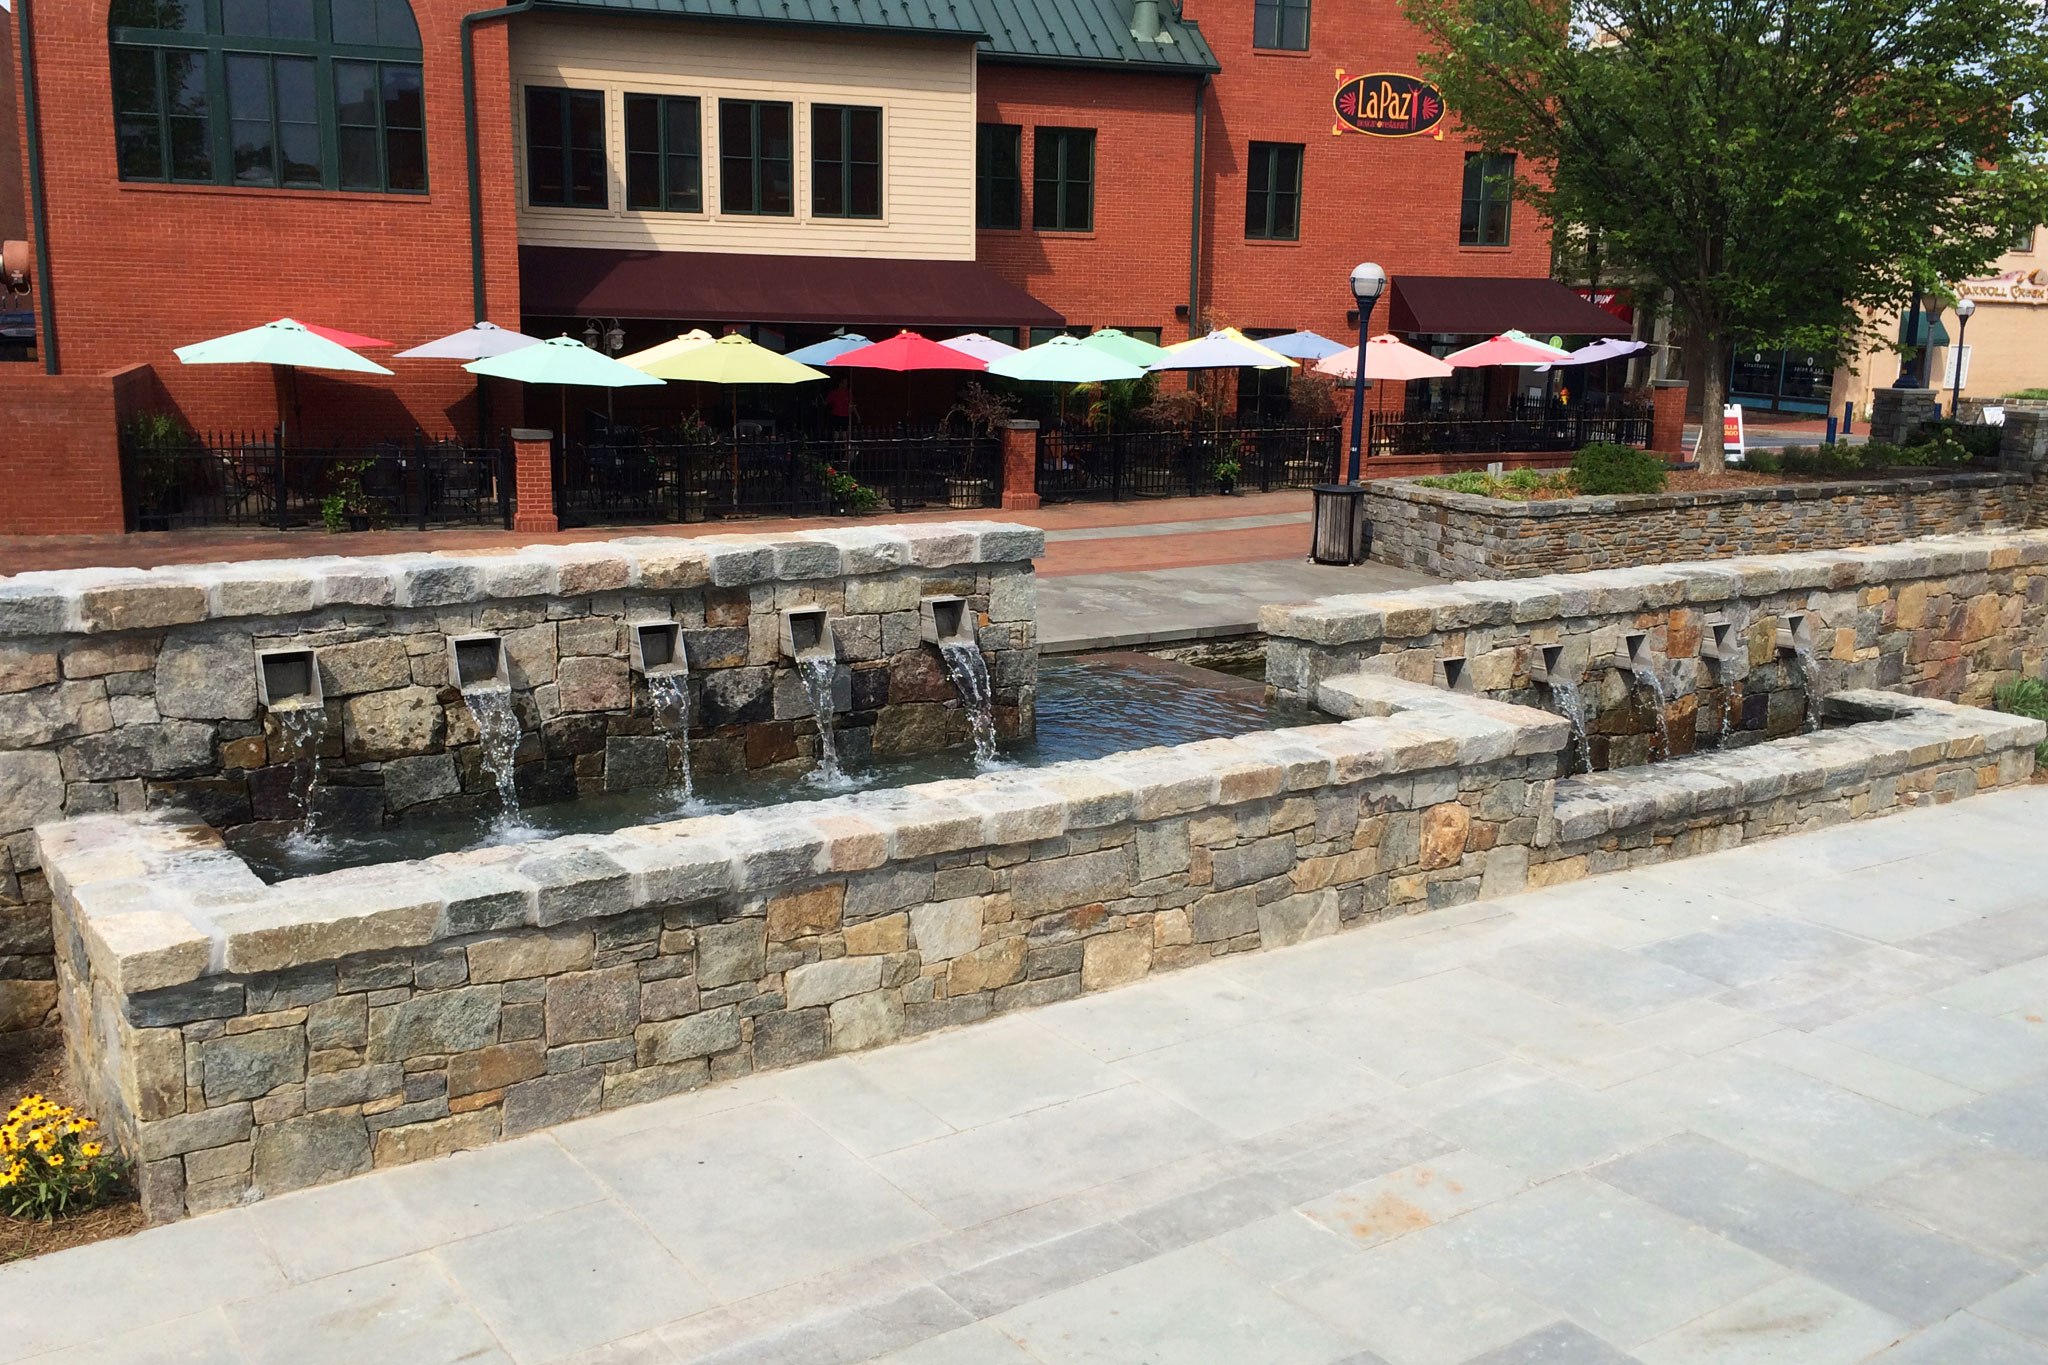 Maryland Retail Outlet Public Water Feature